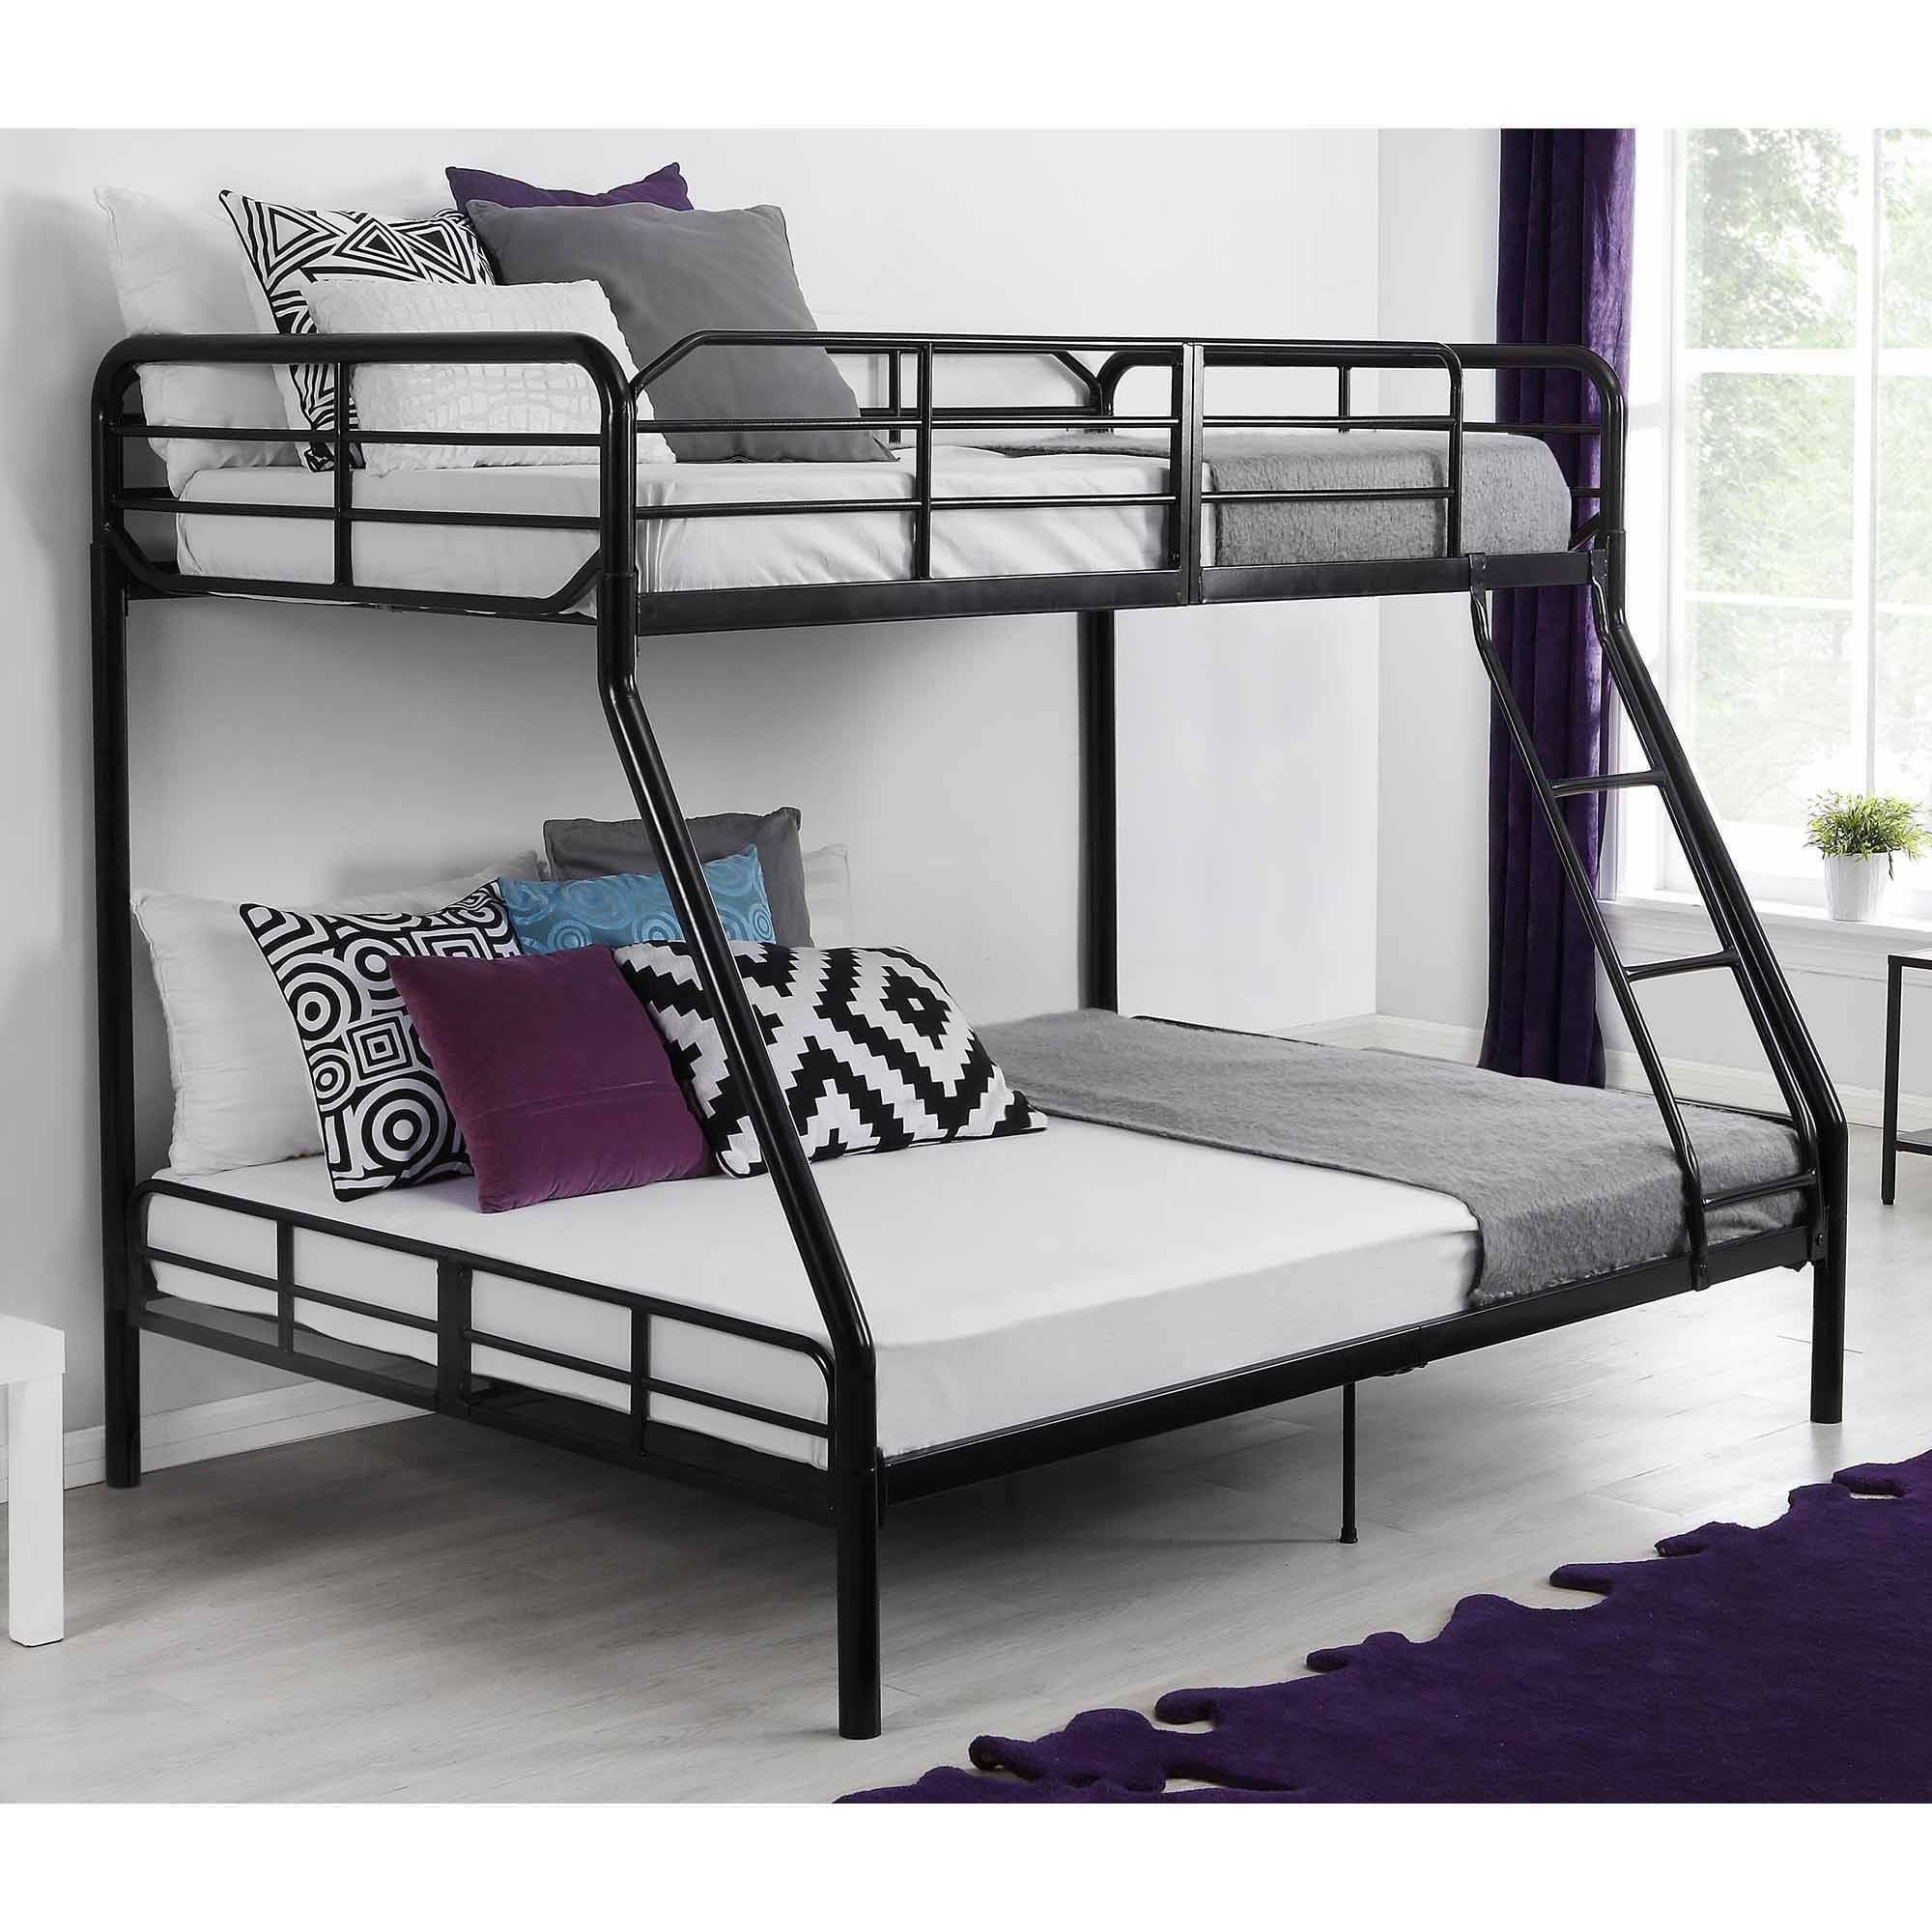 Bunk beds for adults full - Bunk Beds For Adults Full 33